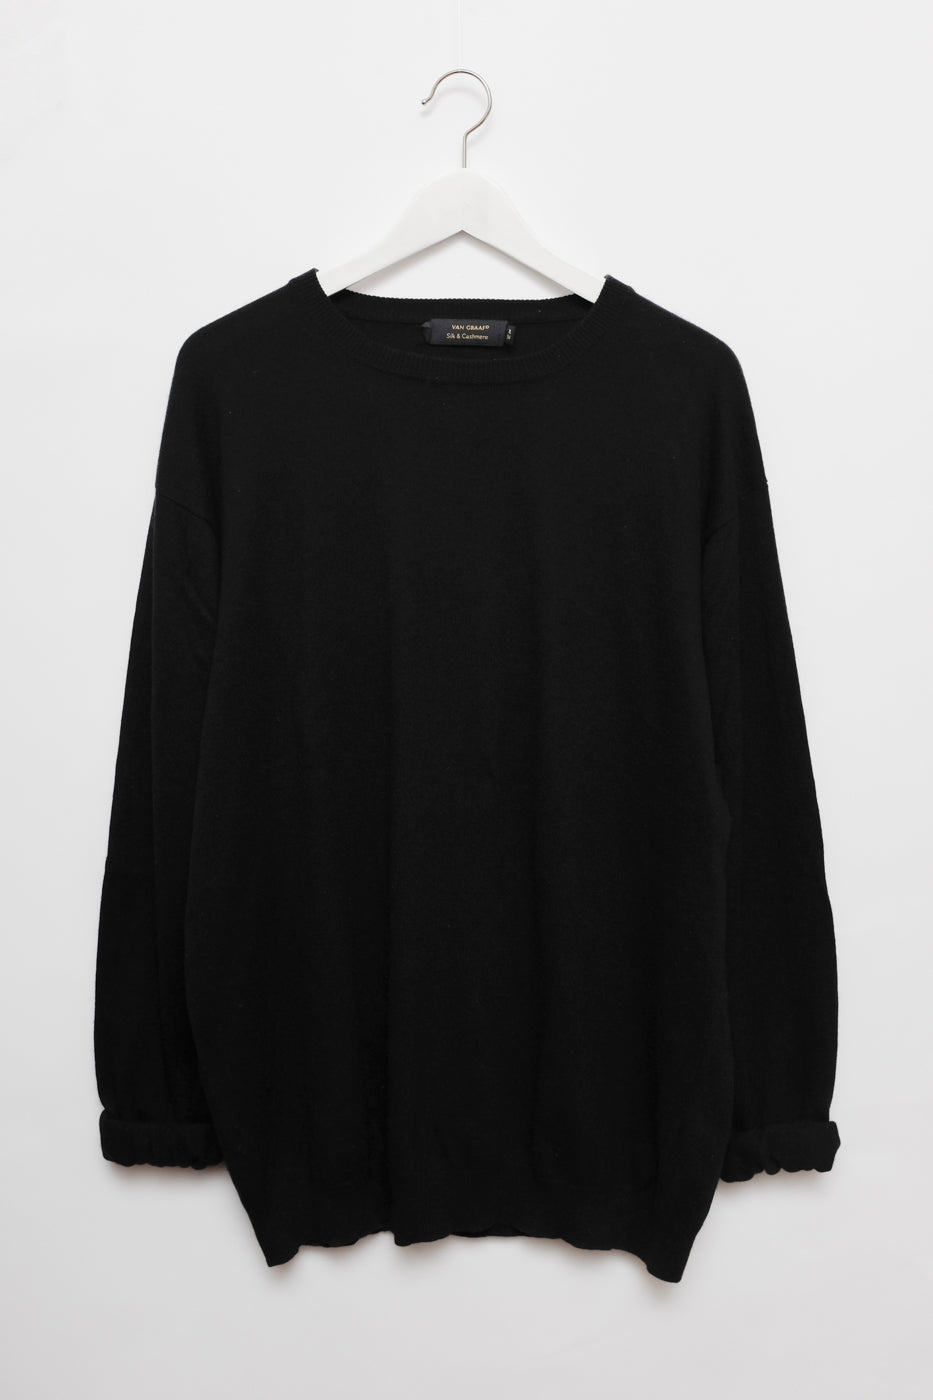 0005_SILK CASHMERE BLACK OVERSIZED SWEATER